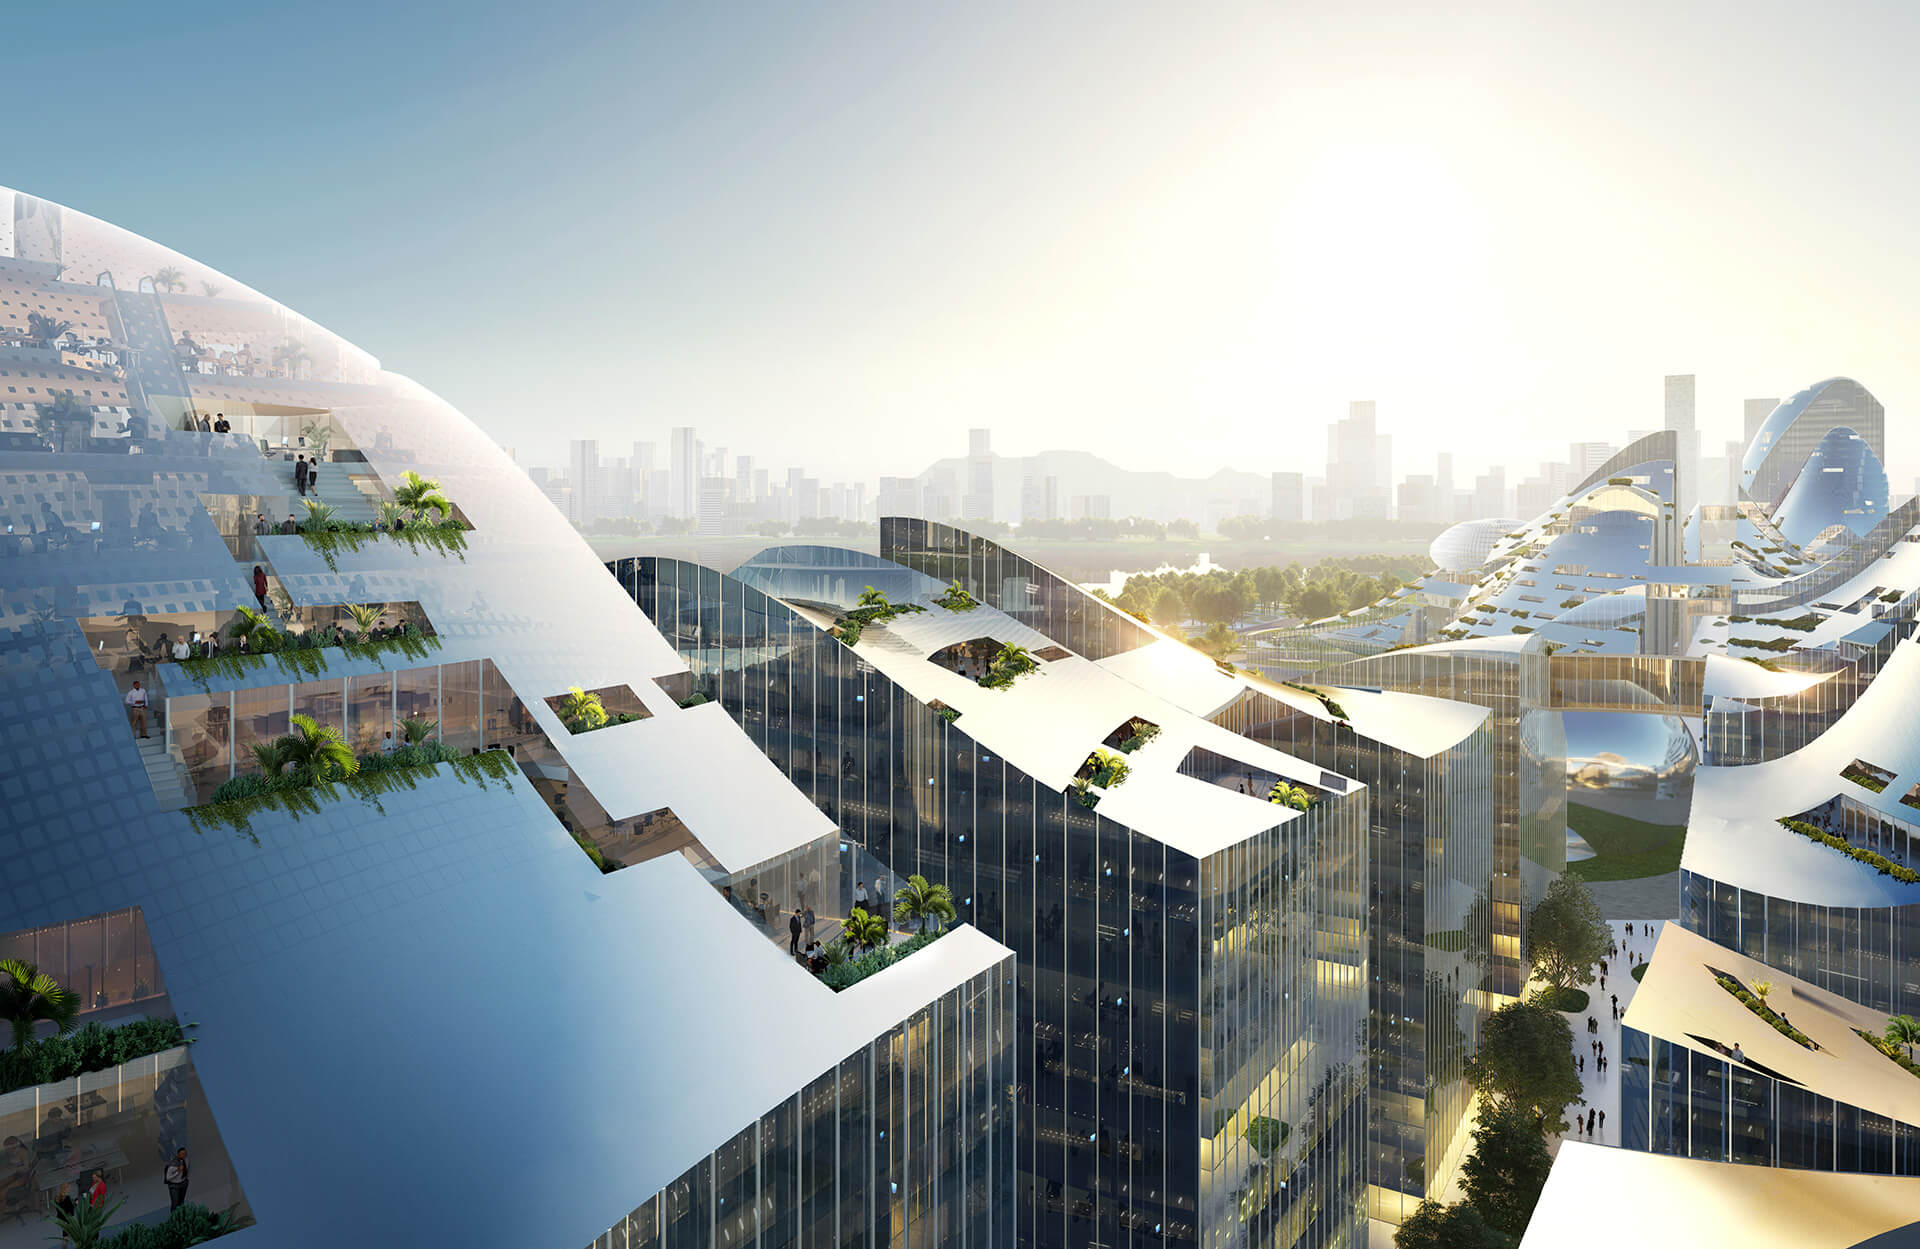 Over 100 buildings within the masterplan feature undulating solar roofs   | New Tencent Headquarters Campus | MVRDV | STIRworld